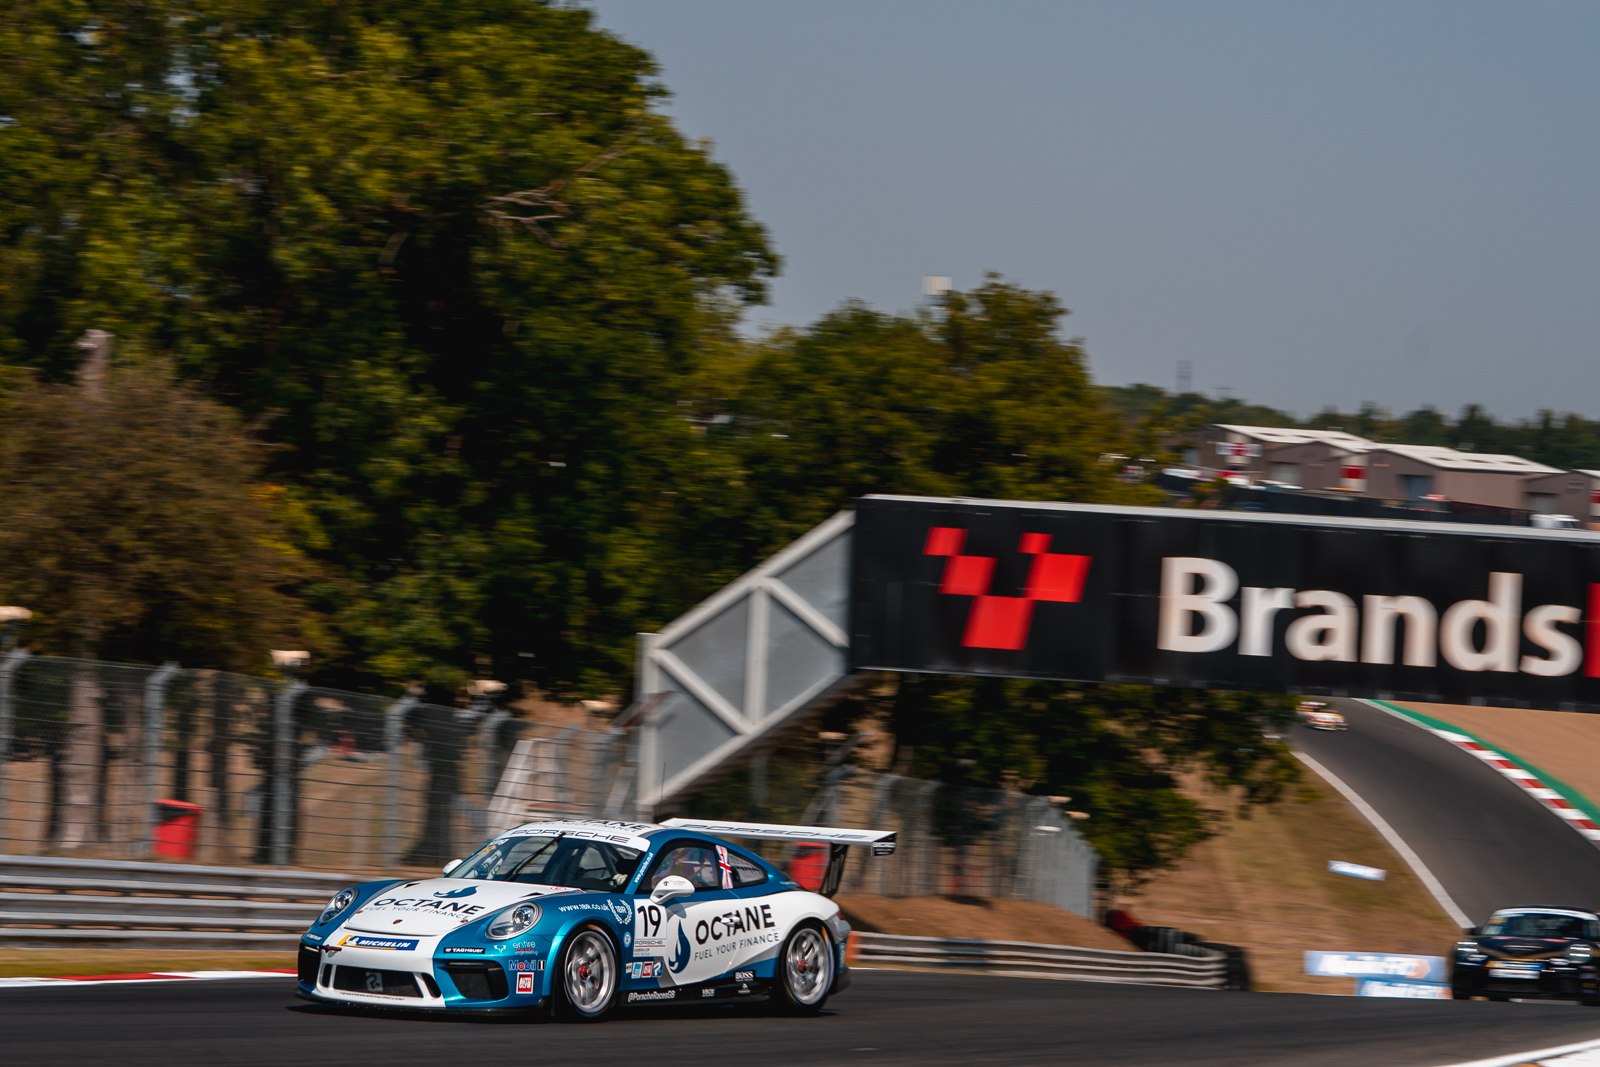 Octane Finance-backed Harry King storms to Brands Hatch double